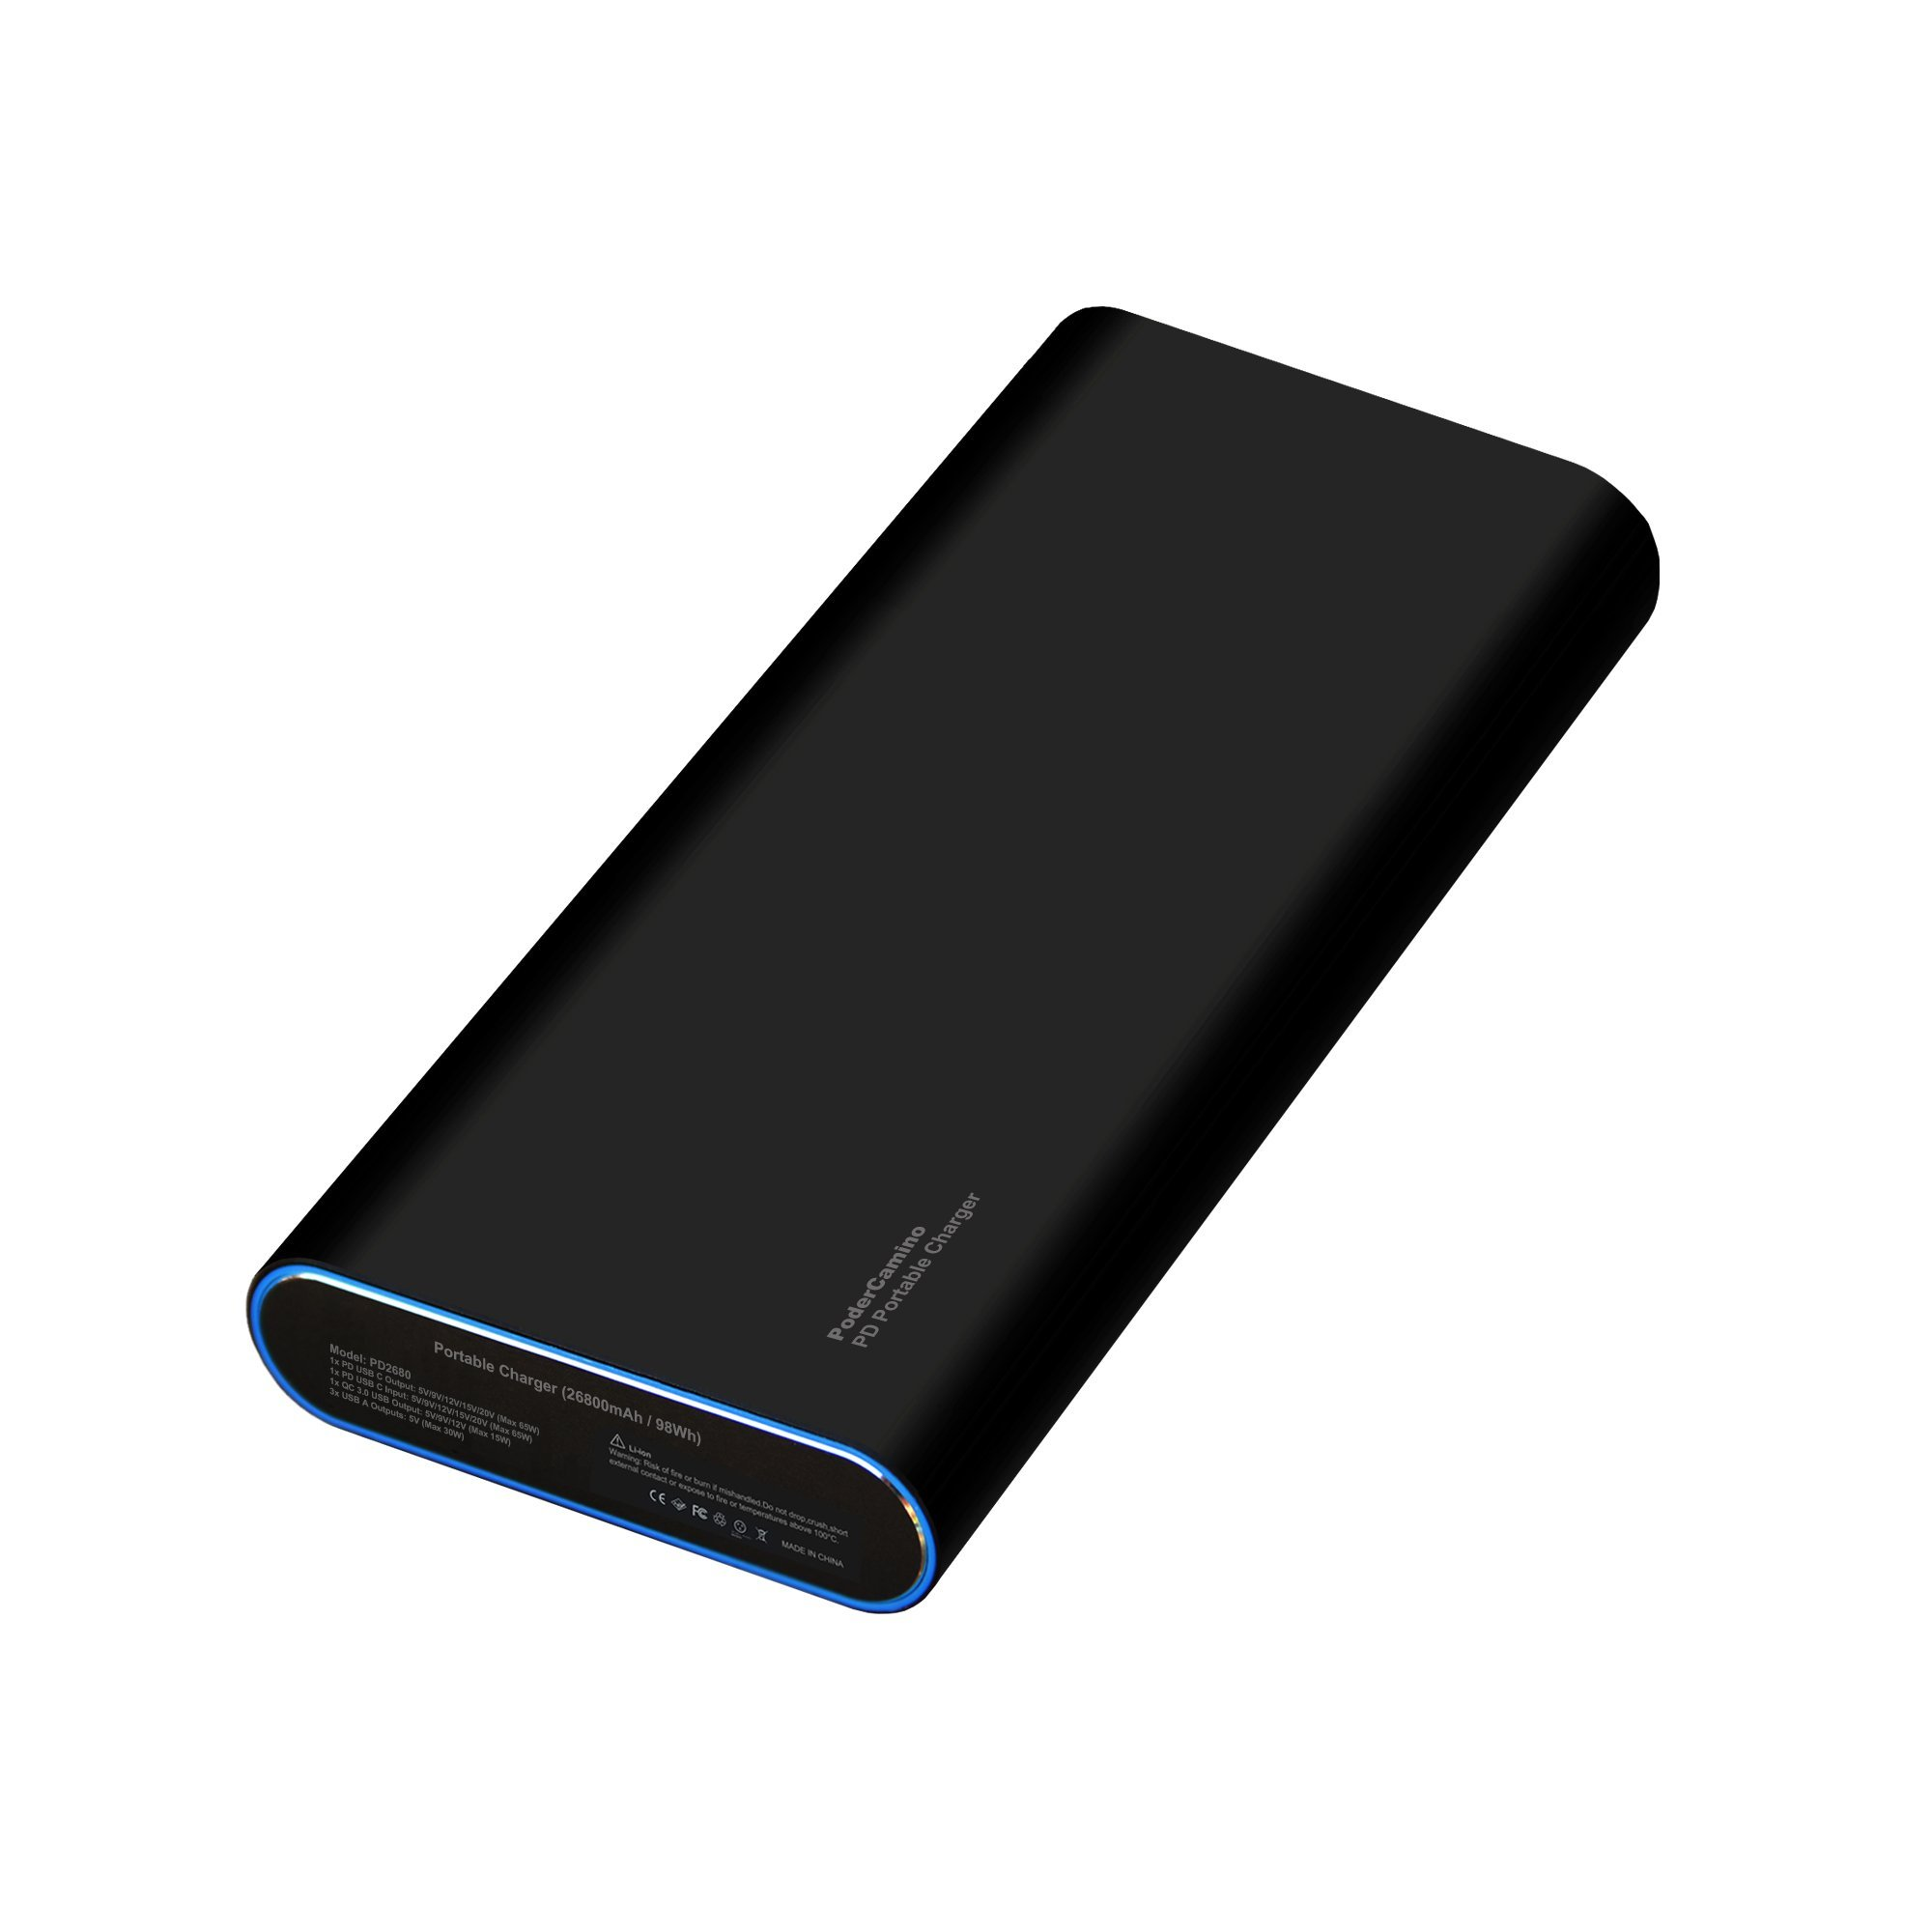 PoderCamino 98Wh PD Portable Charger USB-C Power Bank External Battery for New MacBook Pro 13 15 Surface Book 2 HP Spectre Elite Dell XPS Latitude Razer Lenovo Asus Acer LG USB C Type C laptop tablet by PoderCamino (Image #9)